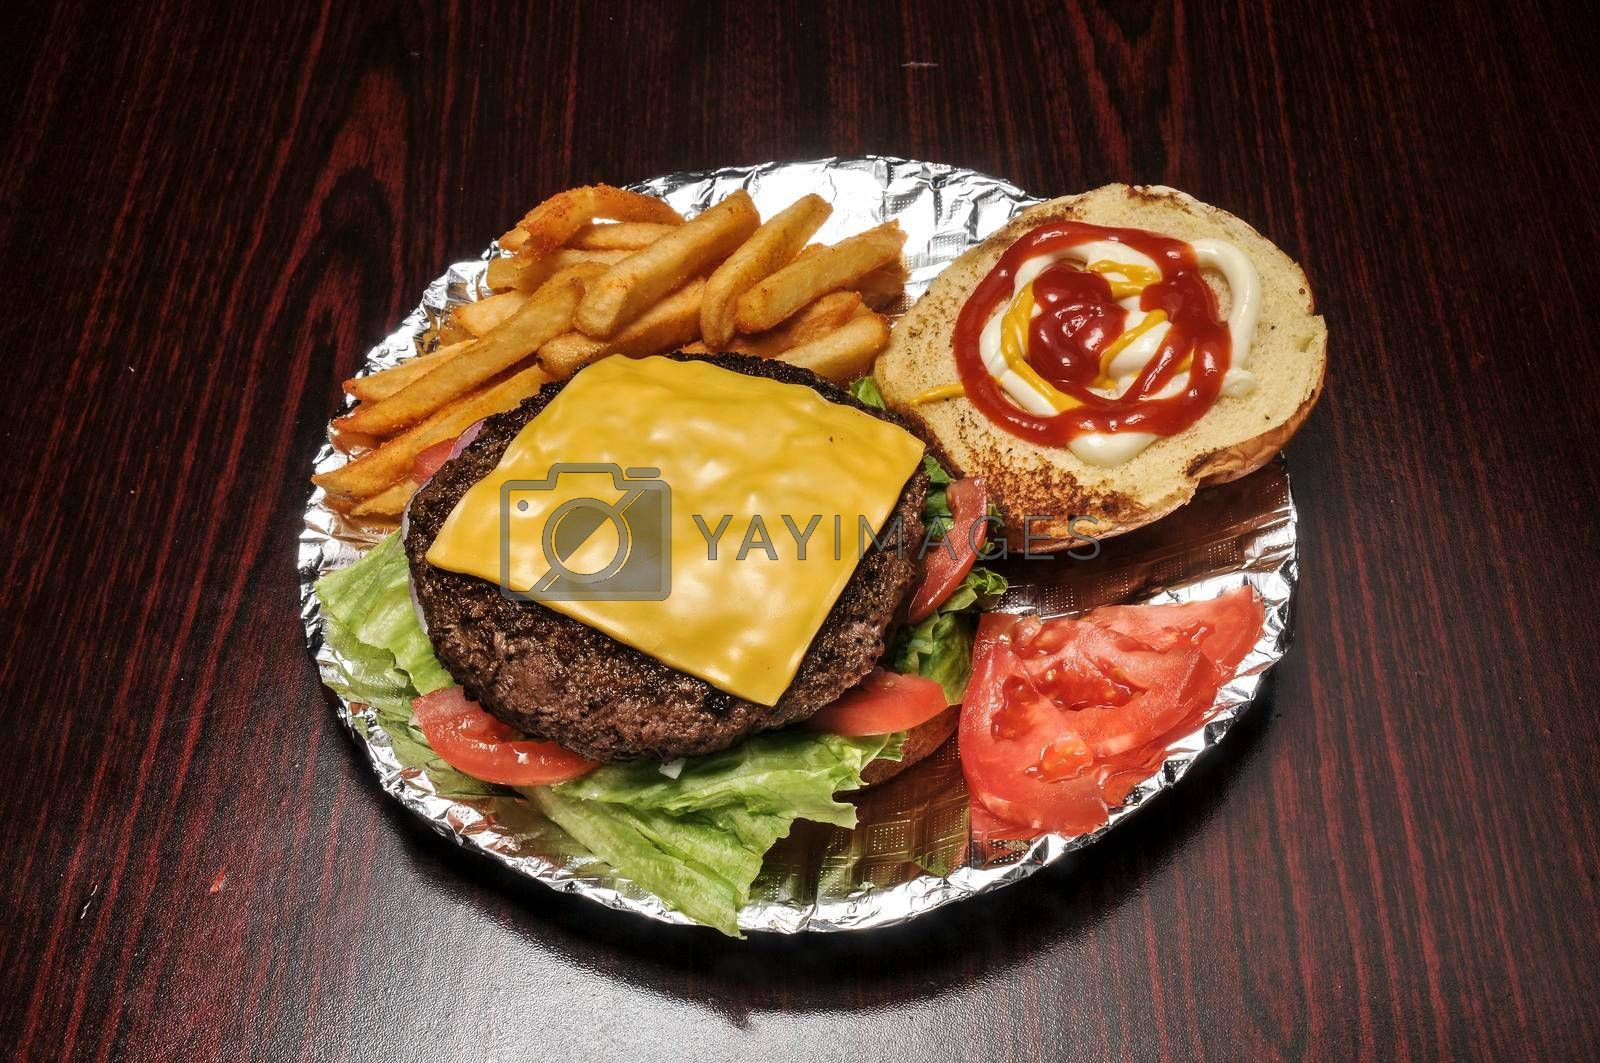 Delicious cheeseburger with all the fixings on a bun